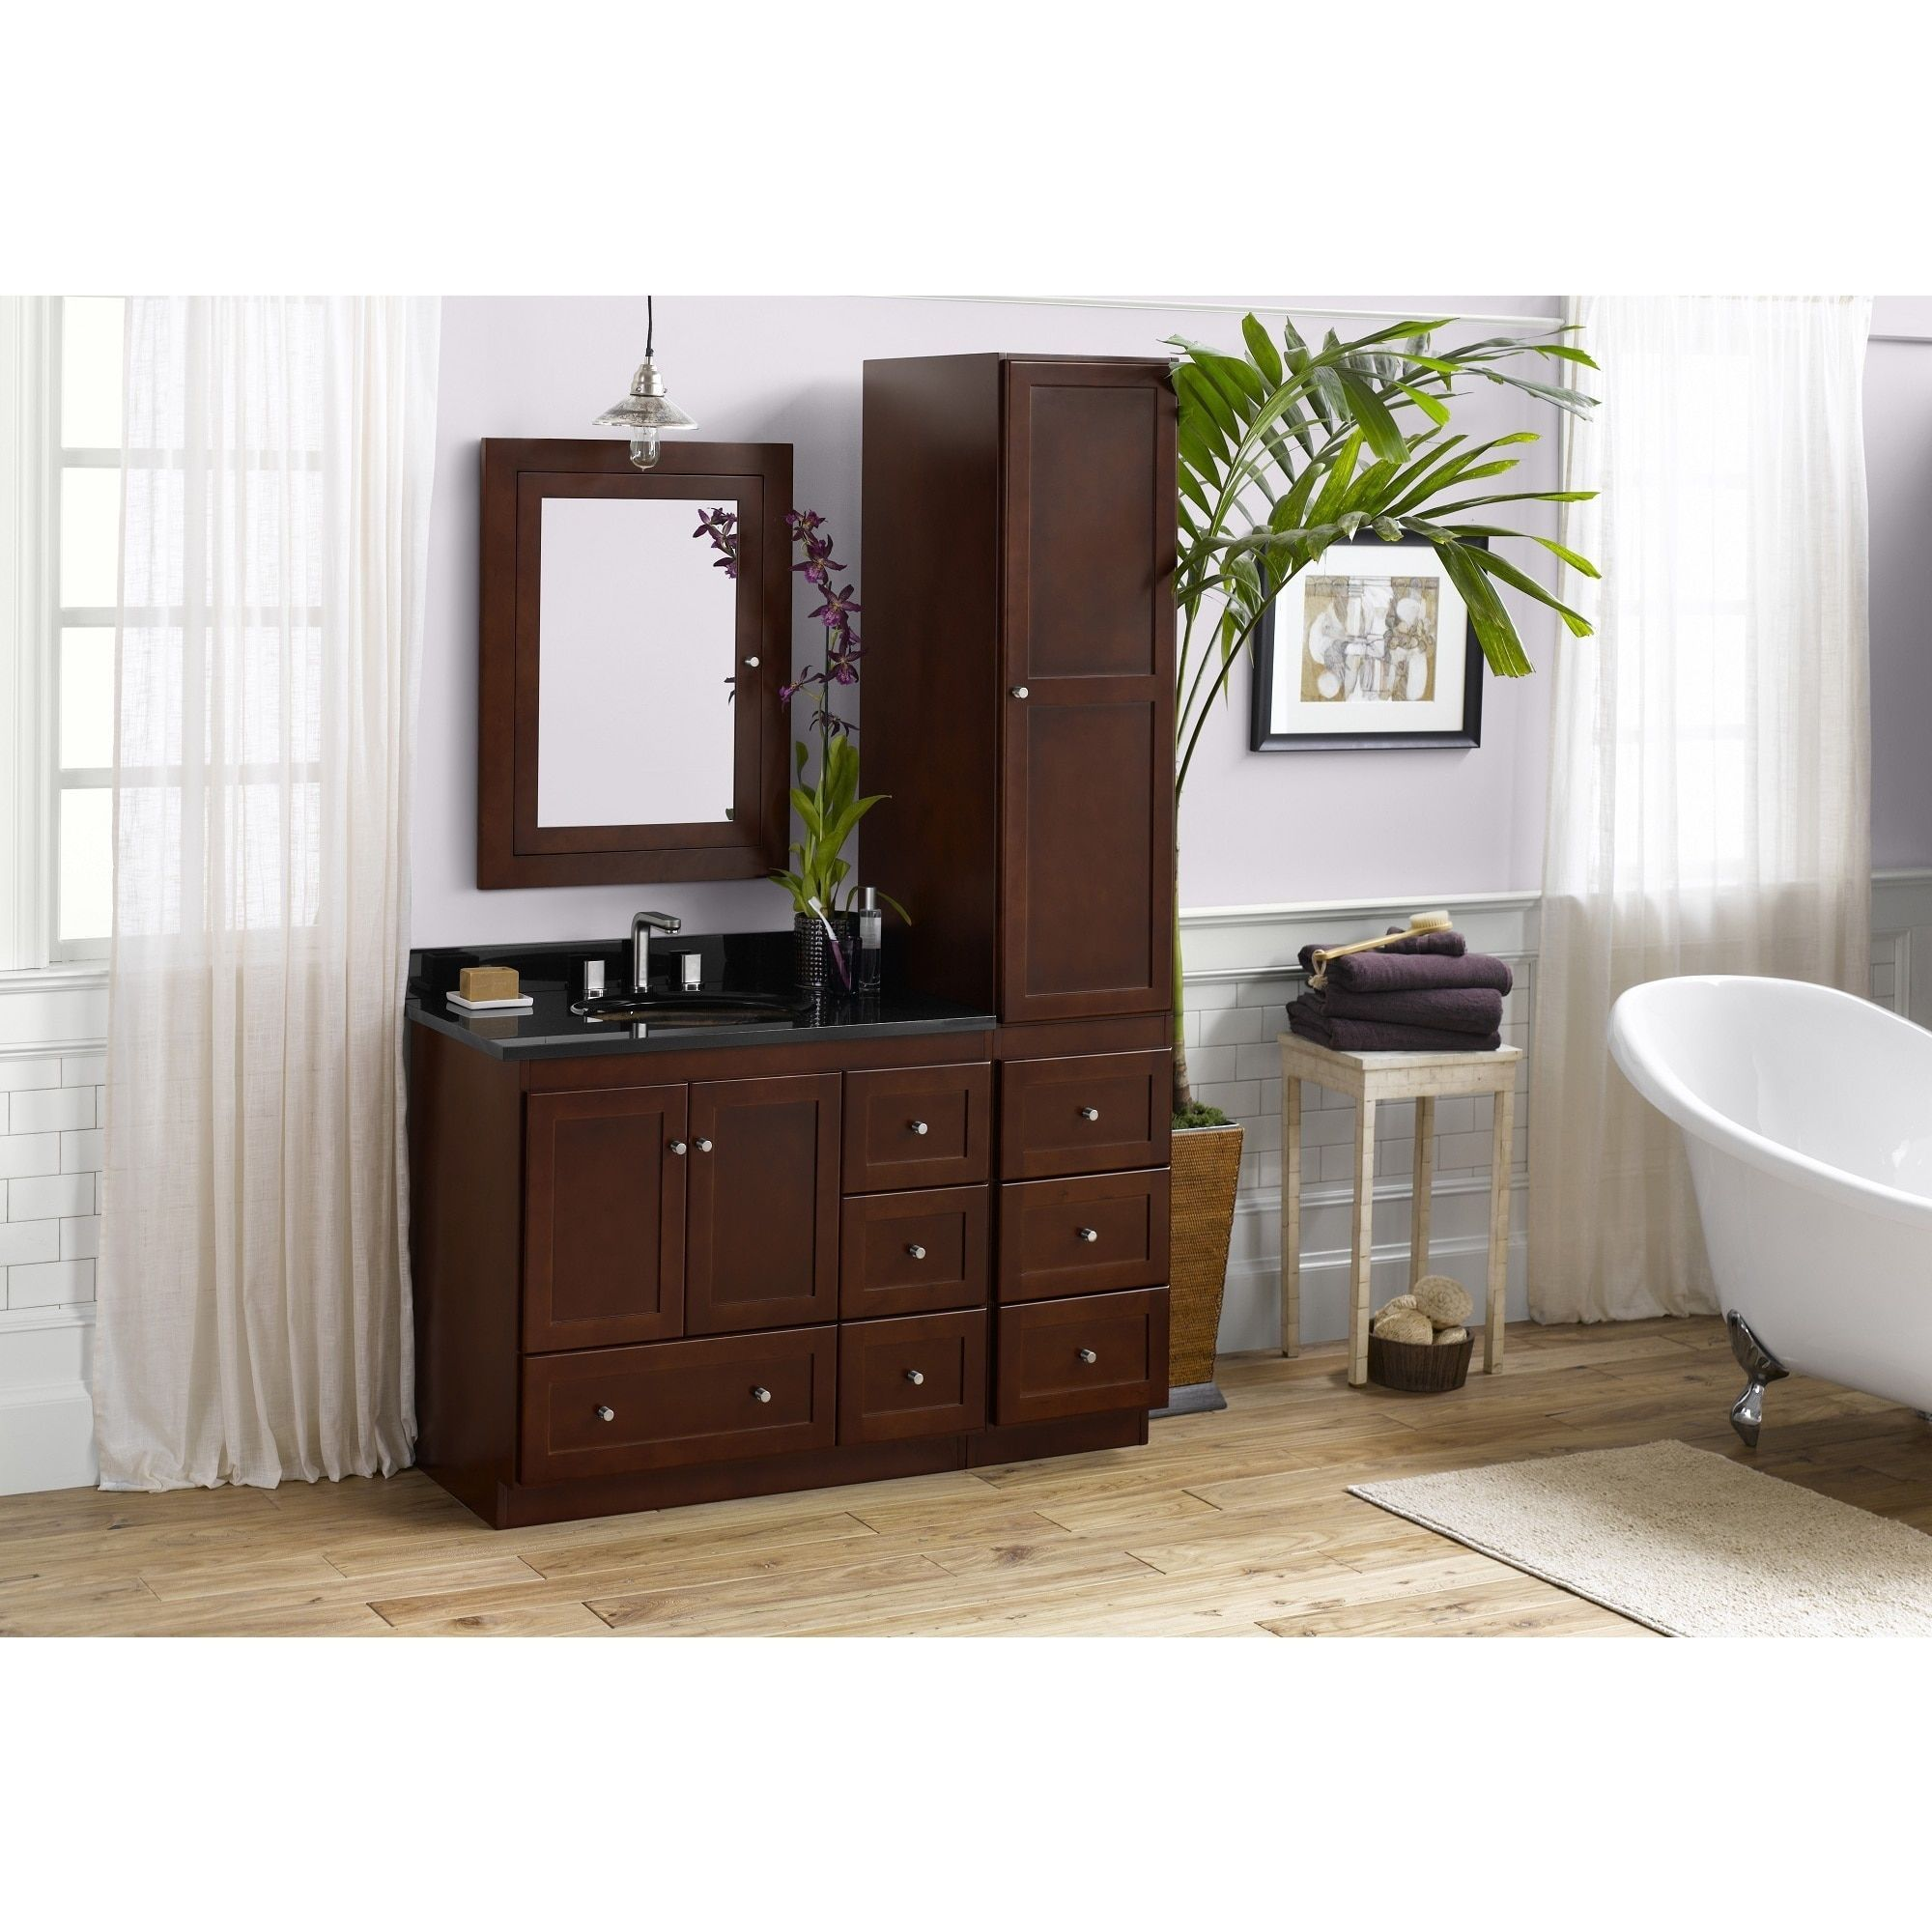 Ronbow shaker 36 inch bathroom vanity set in dark cherry for Bathroom cabinets 36